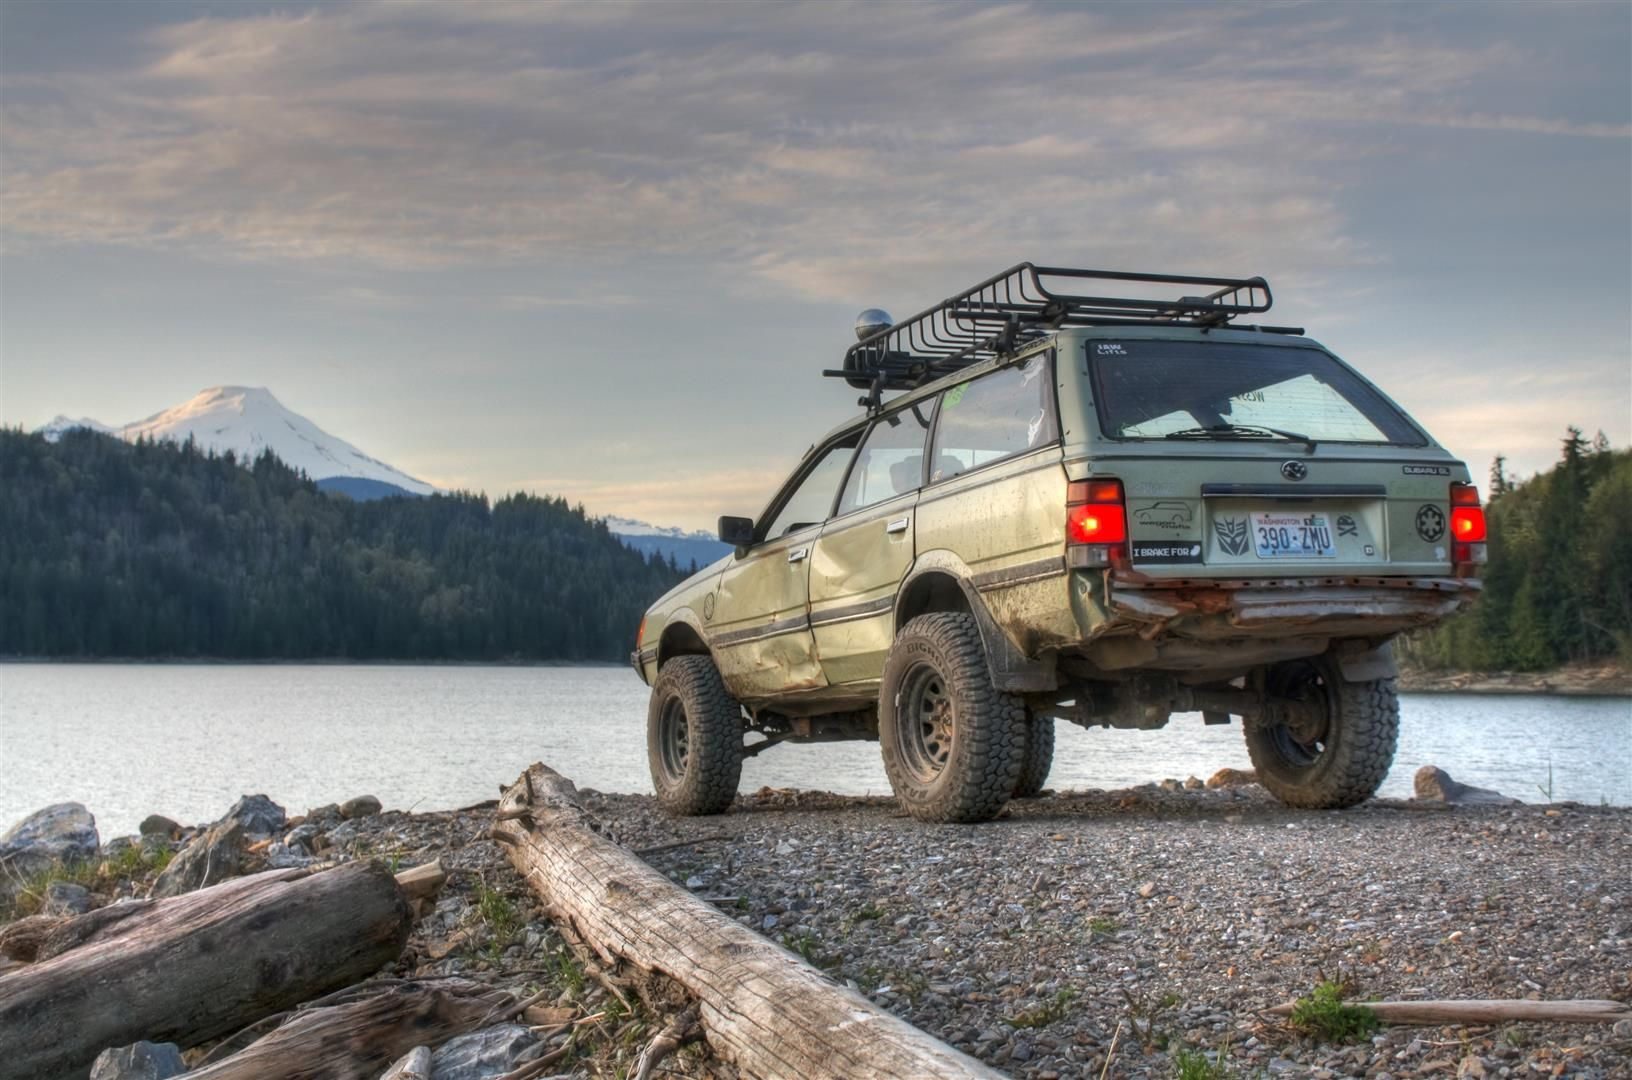 Subaru forester mountain rescue subielove subaru subaru subaru forester mountain rescue subielove subaru subaru forester pinterest subaru subaru forester and offroad vanachro Gallery